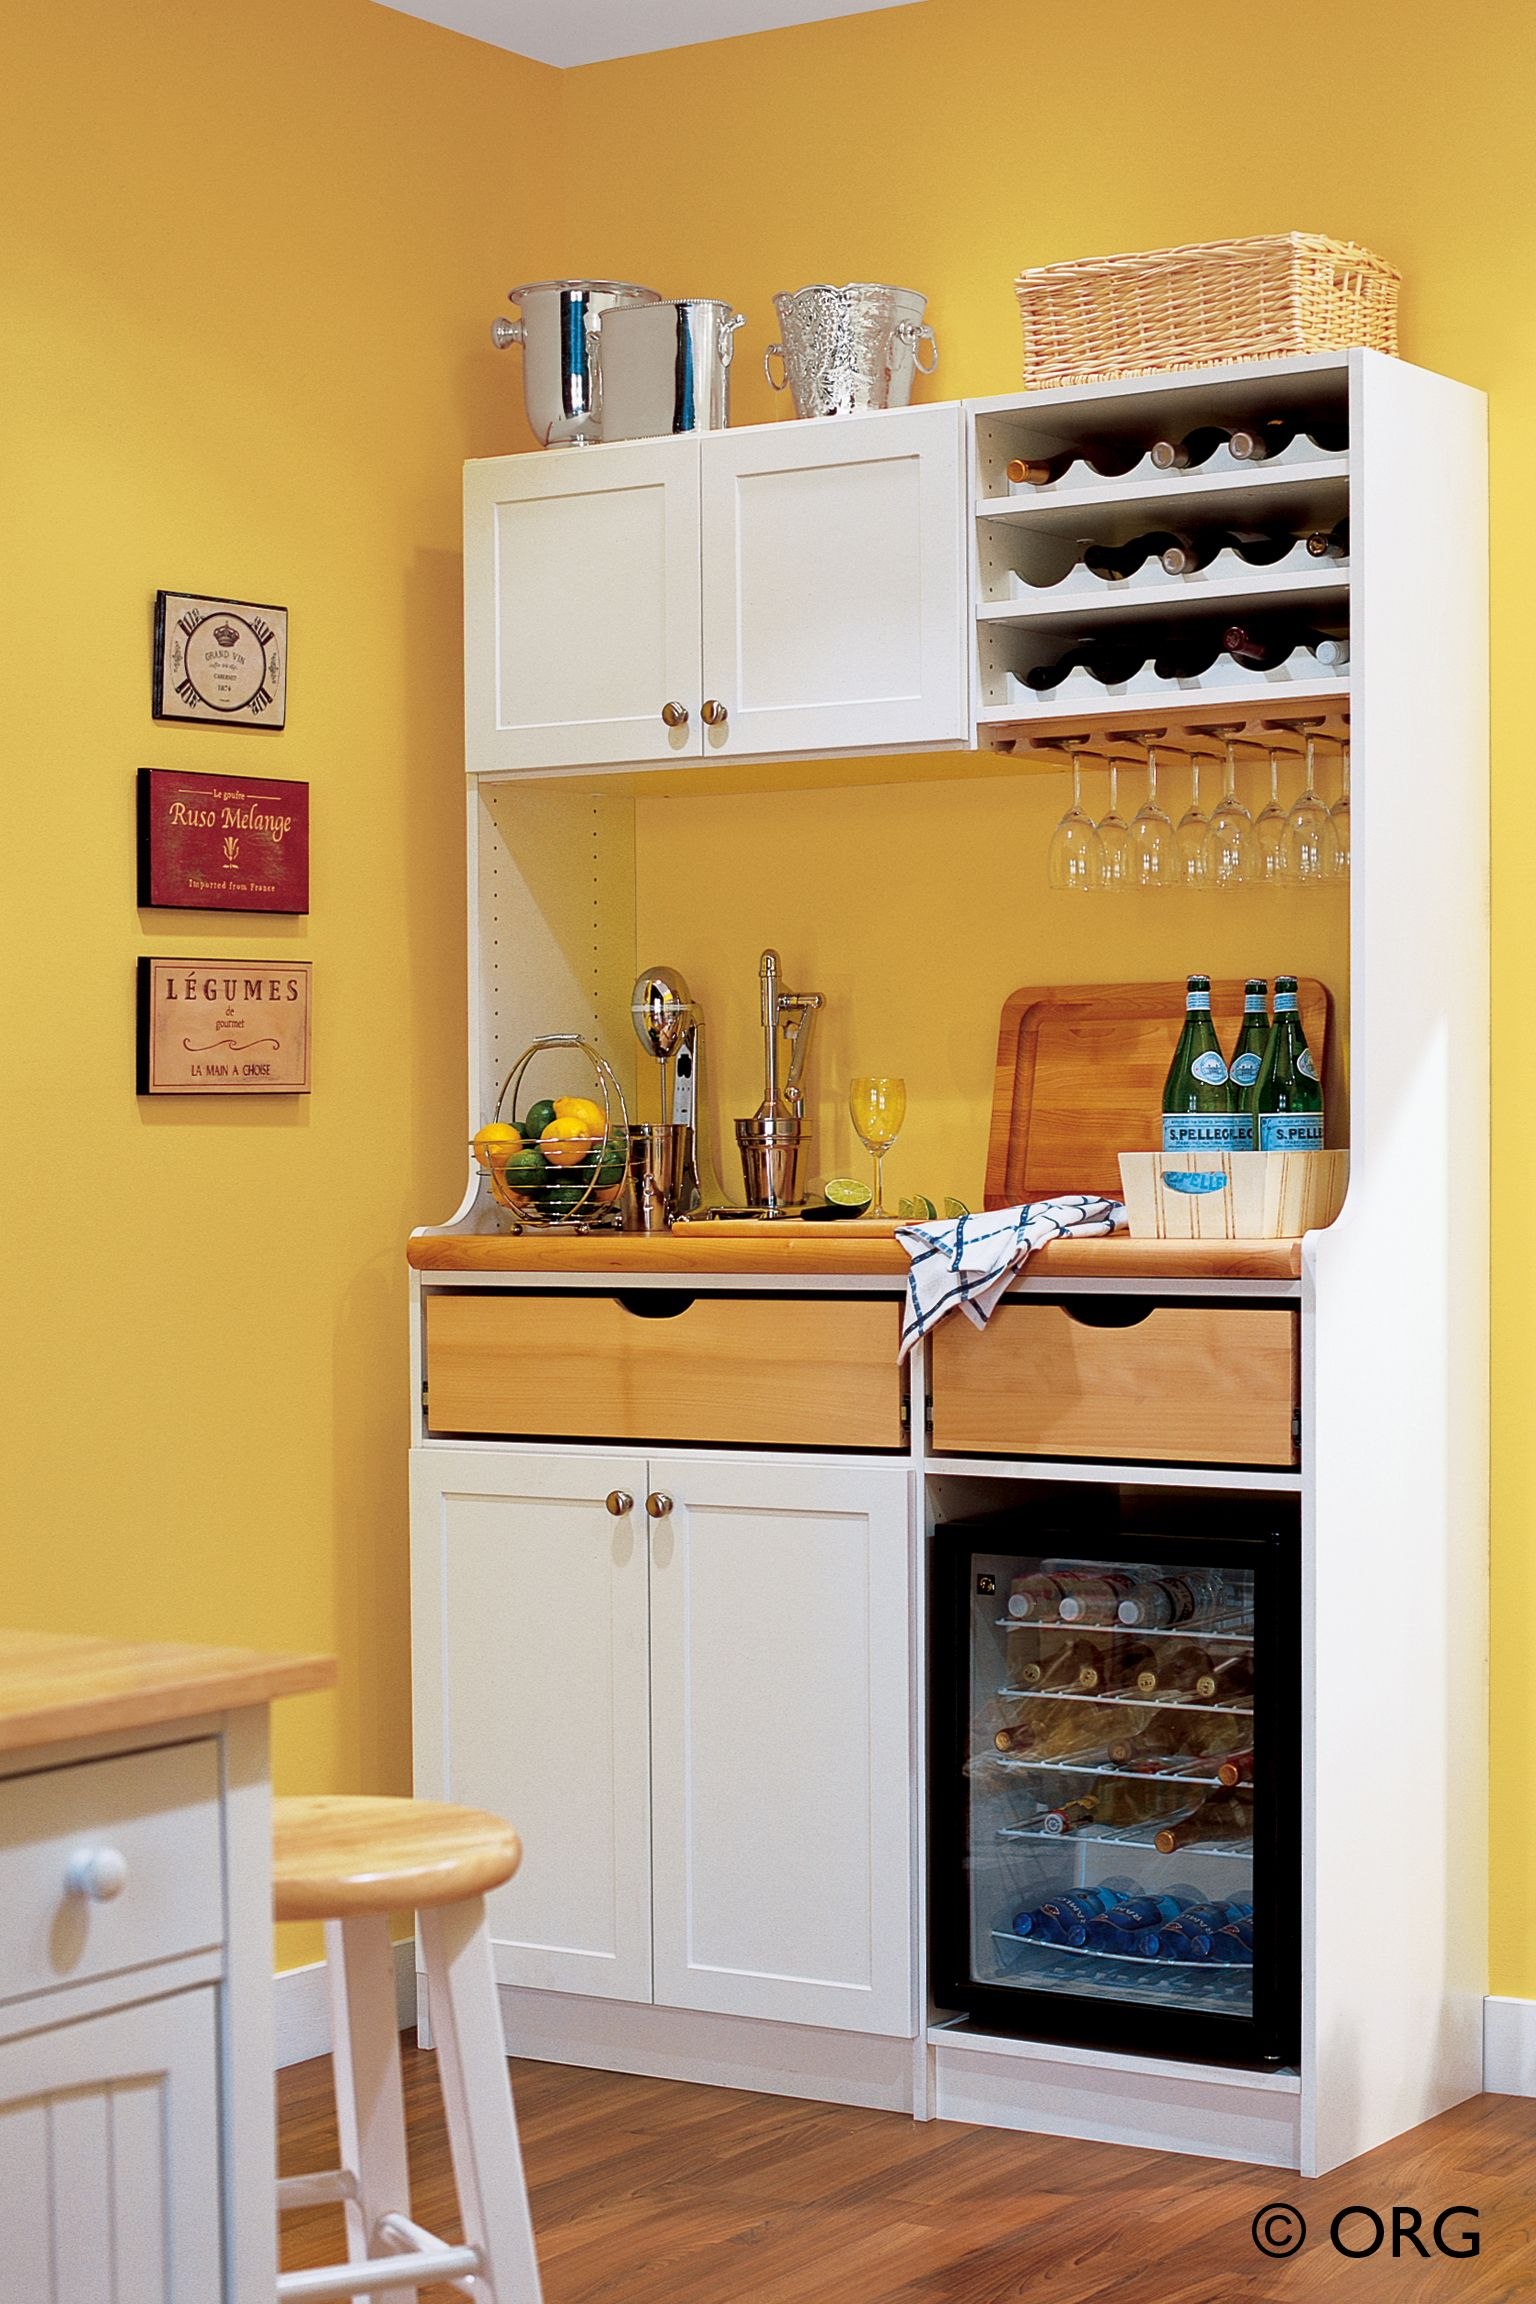 Kitchen Cabinets Storage Solutions storage solutions for tiny kitchens | kitchen storage solutions